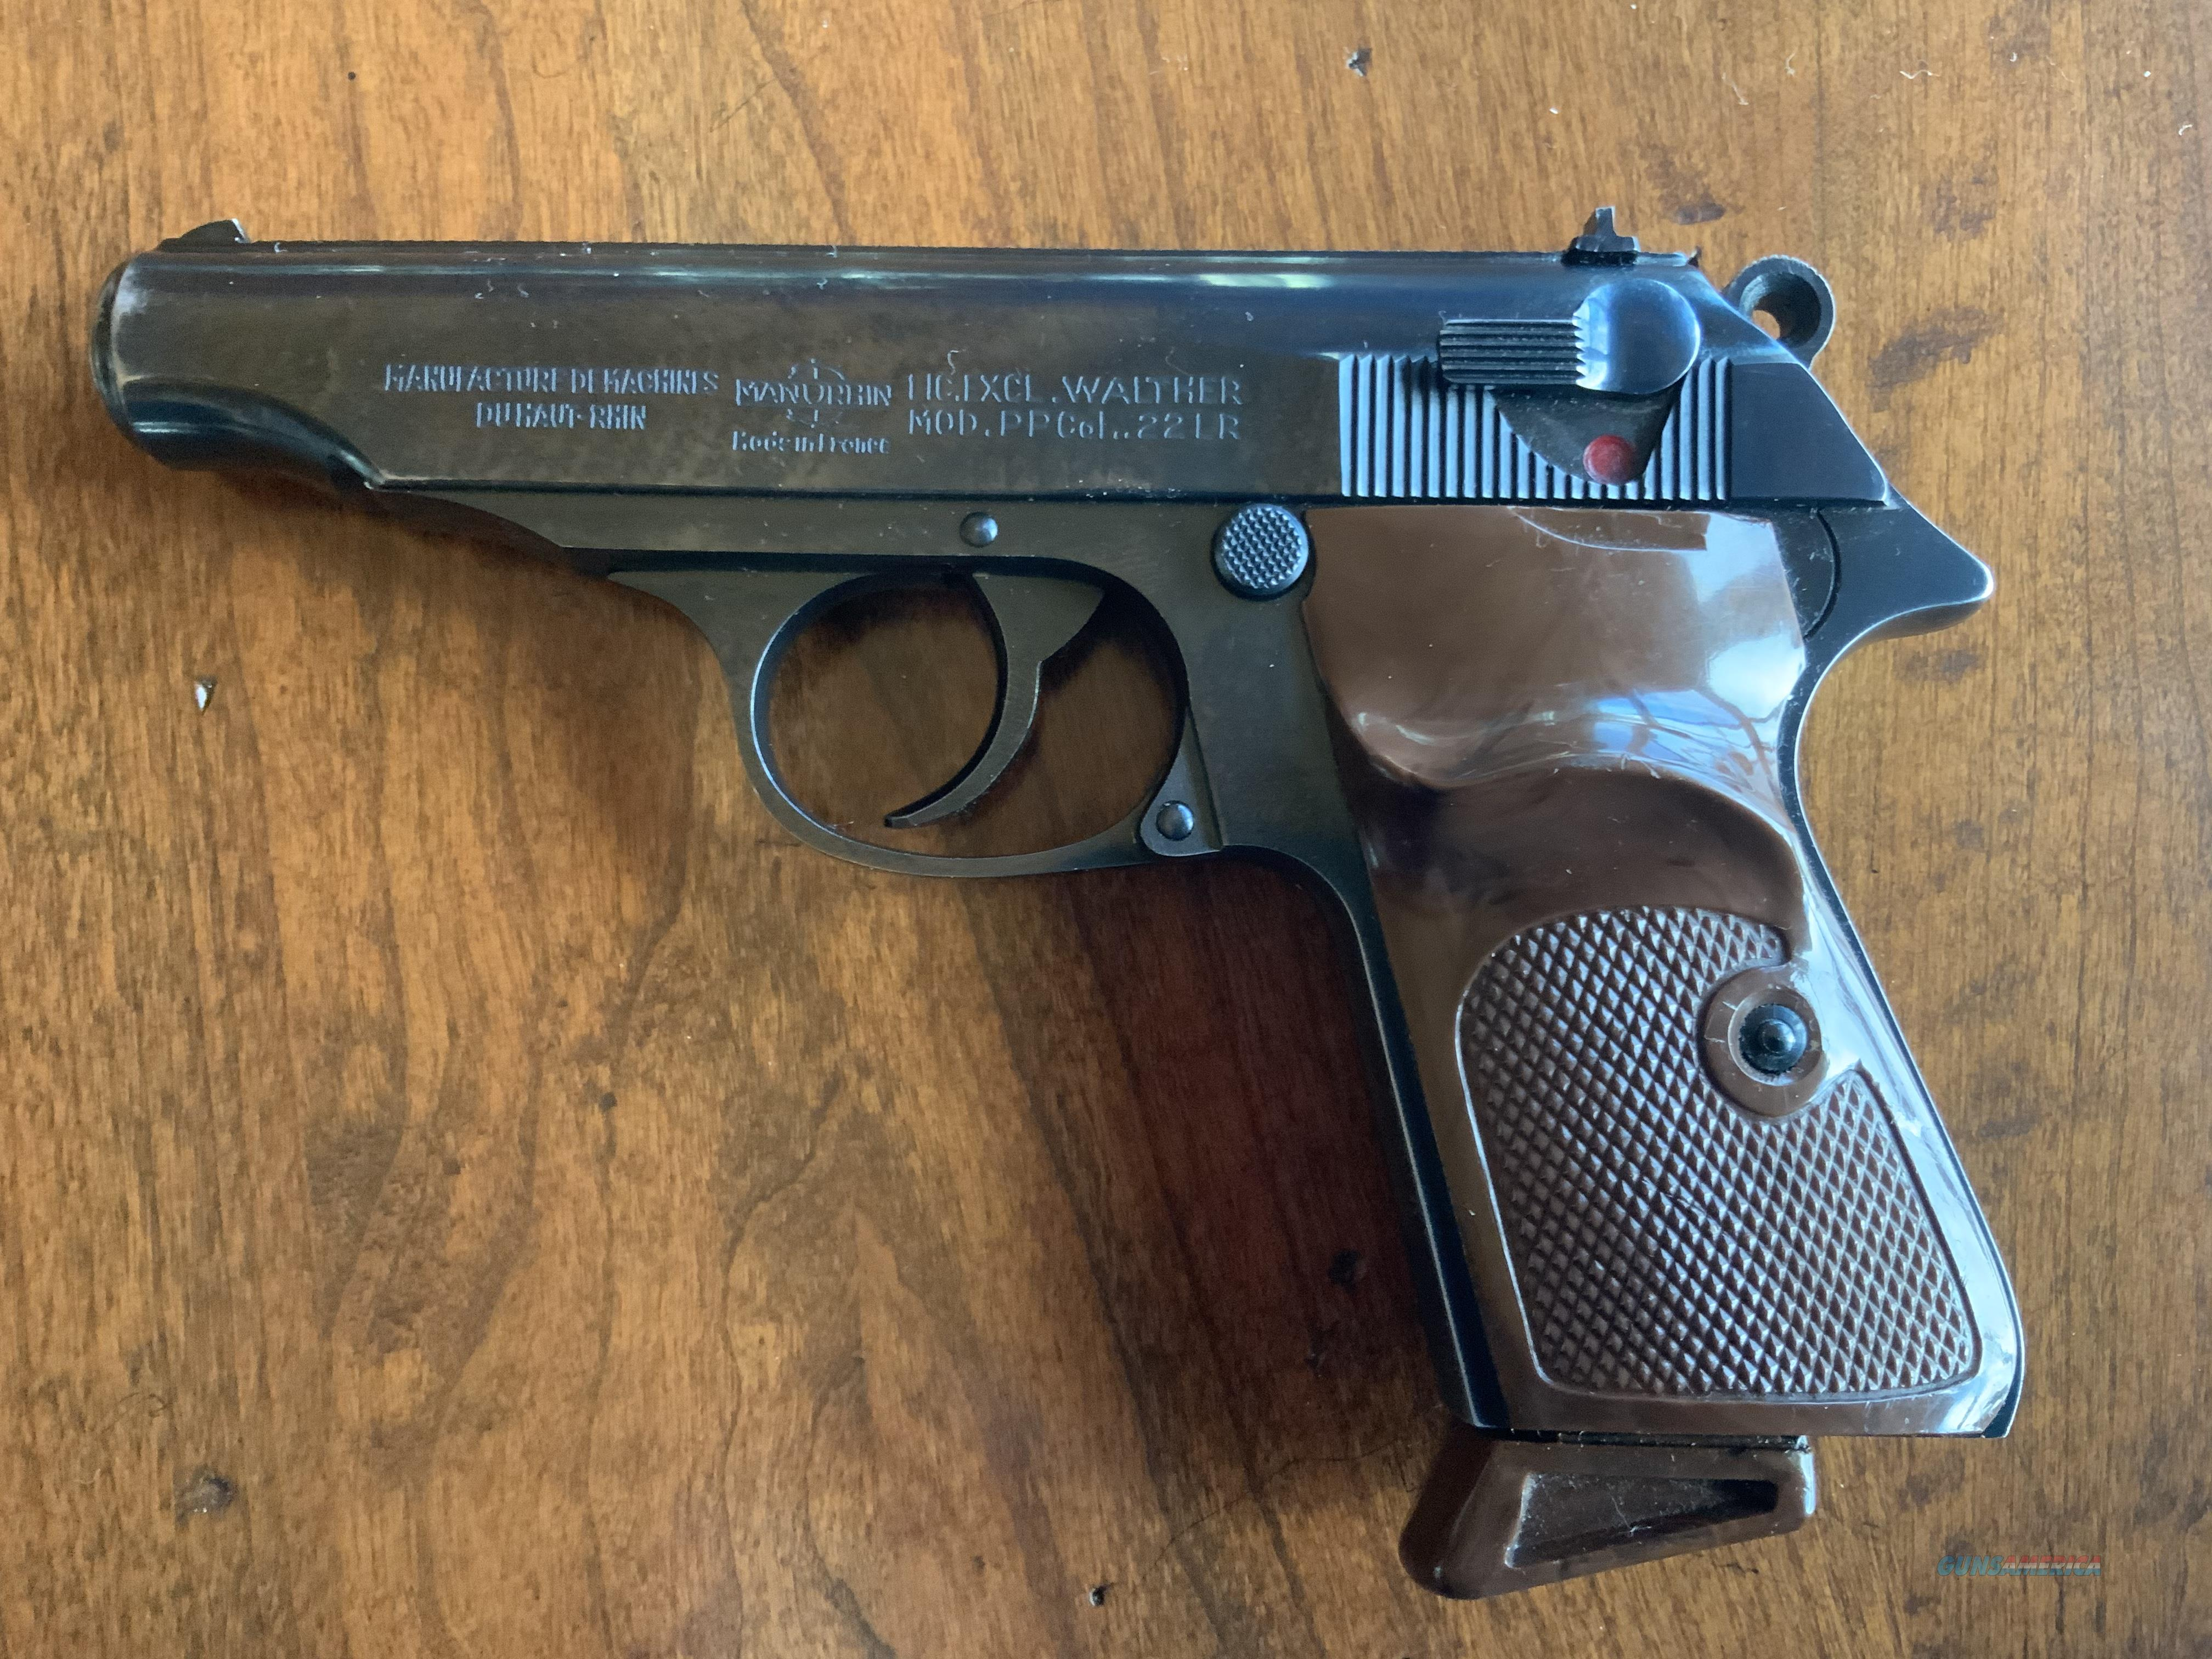 WTS Walther / Manurhin PP .22LR  Guns > Pistols > Walther Pistols > Post WWII > PPK Series